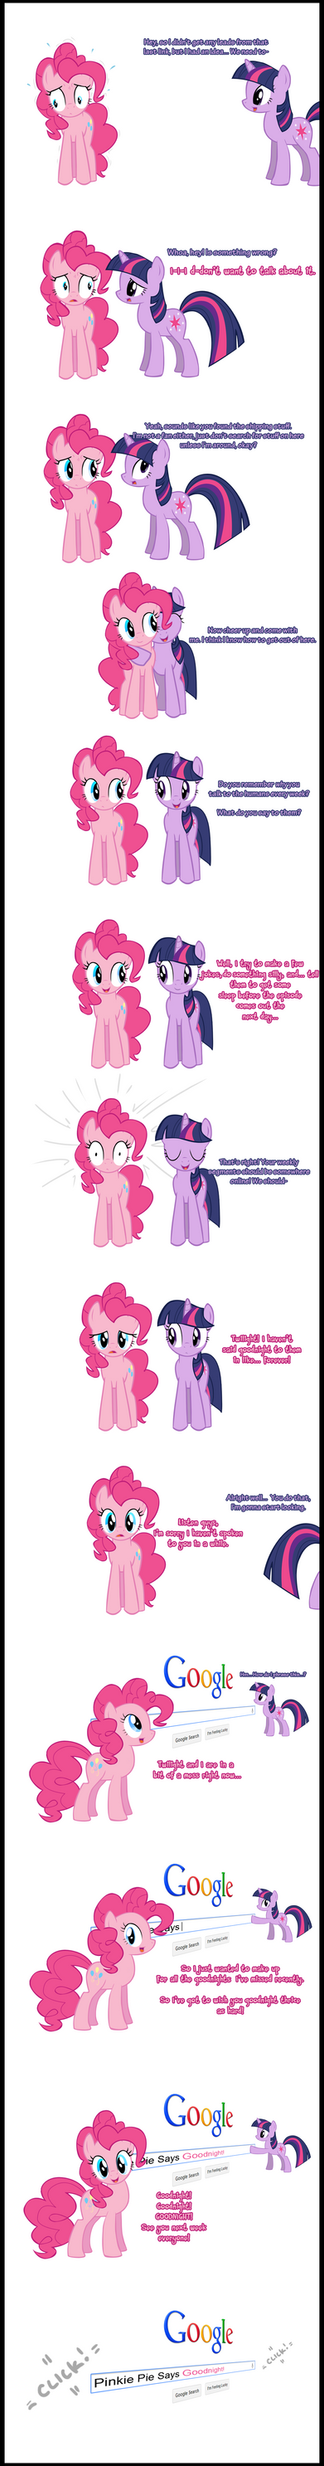 Pinkie Pie (finally) says Goodnight! by Undead-Niklos